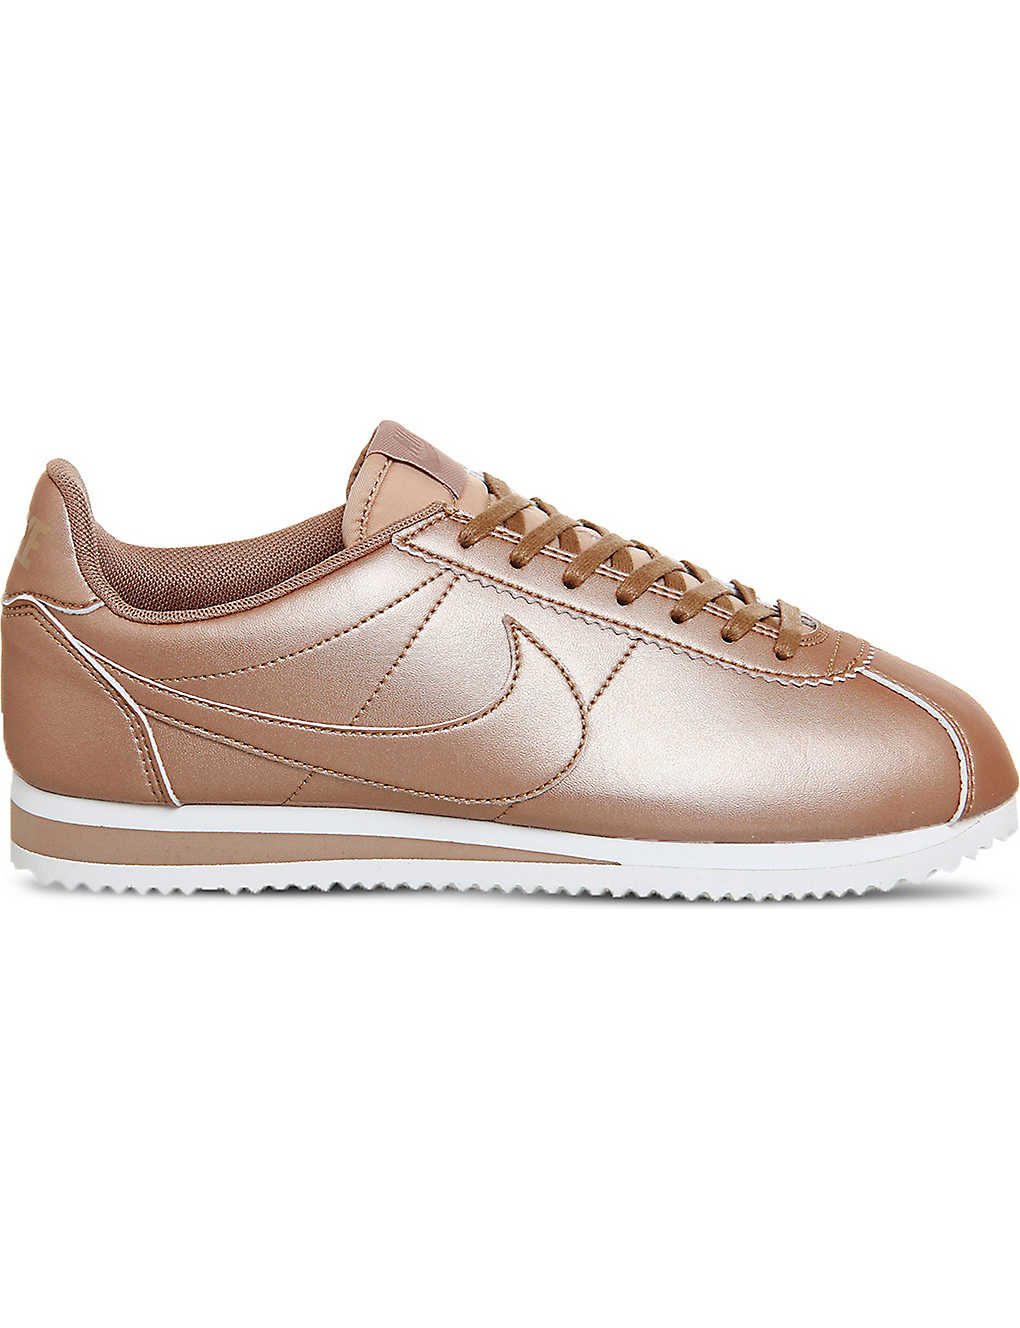 sports shoes 2d98a 472c7 Classic Cortez OG metallic trainers ...